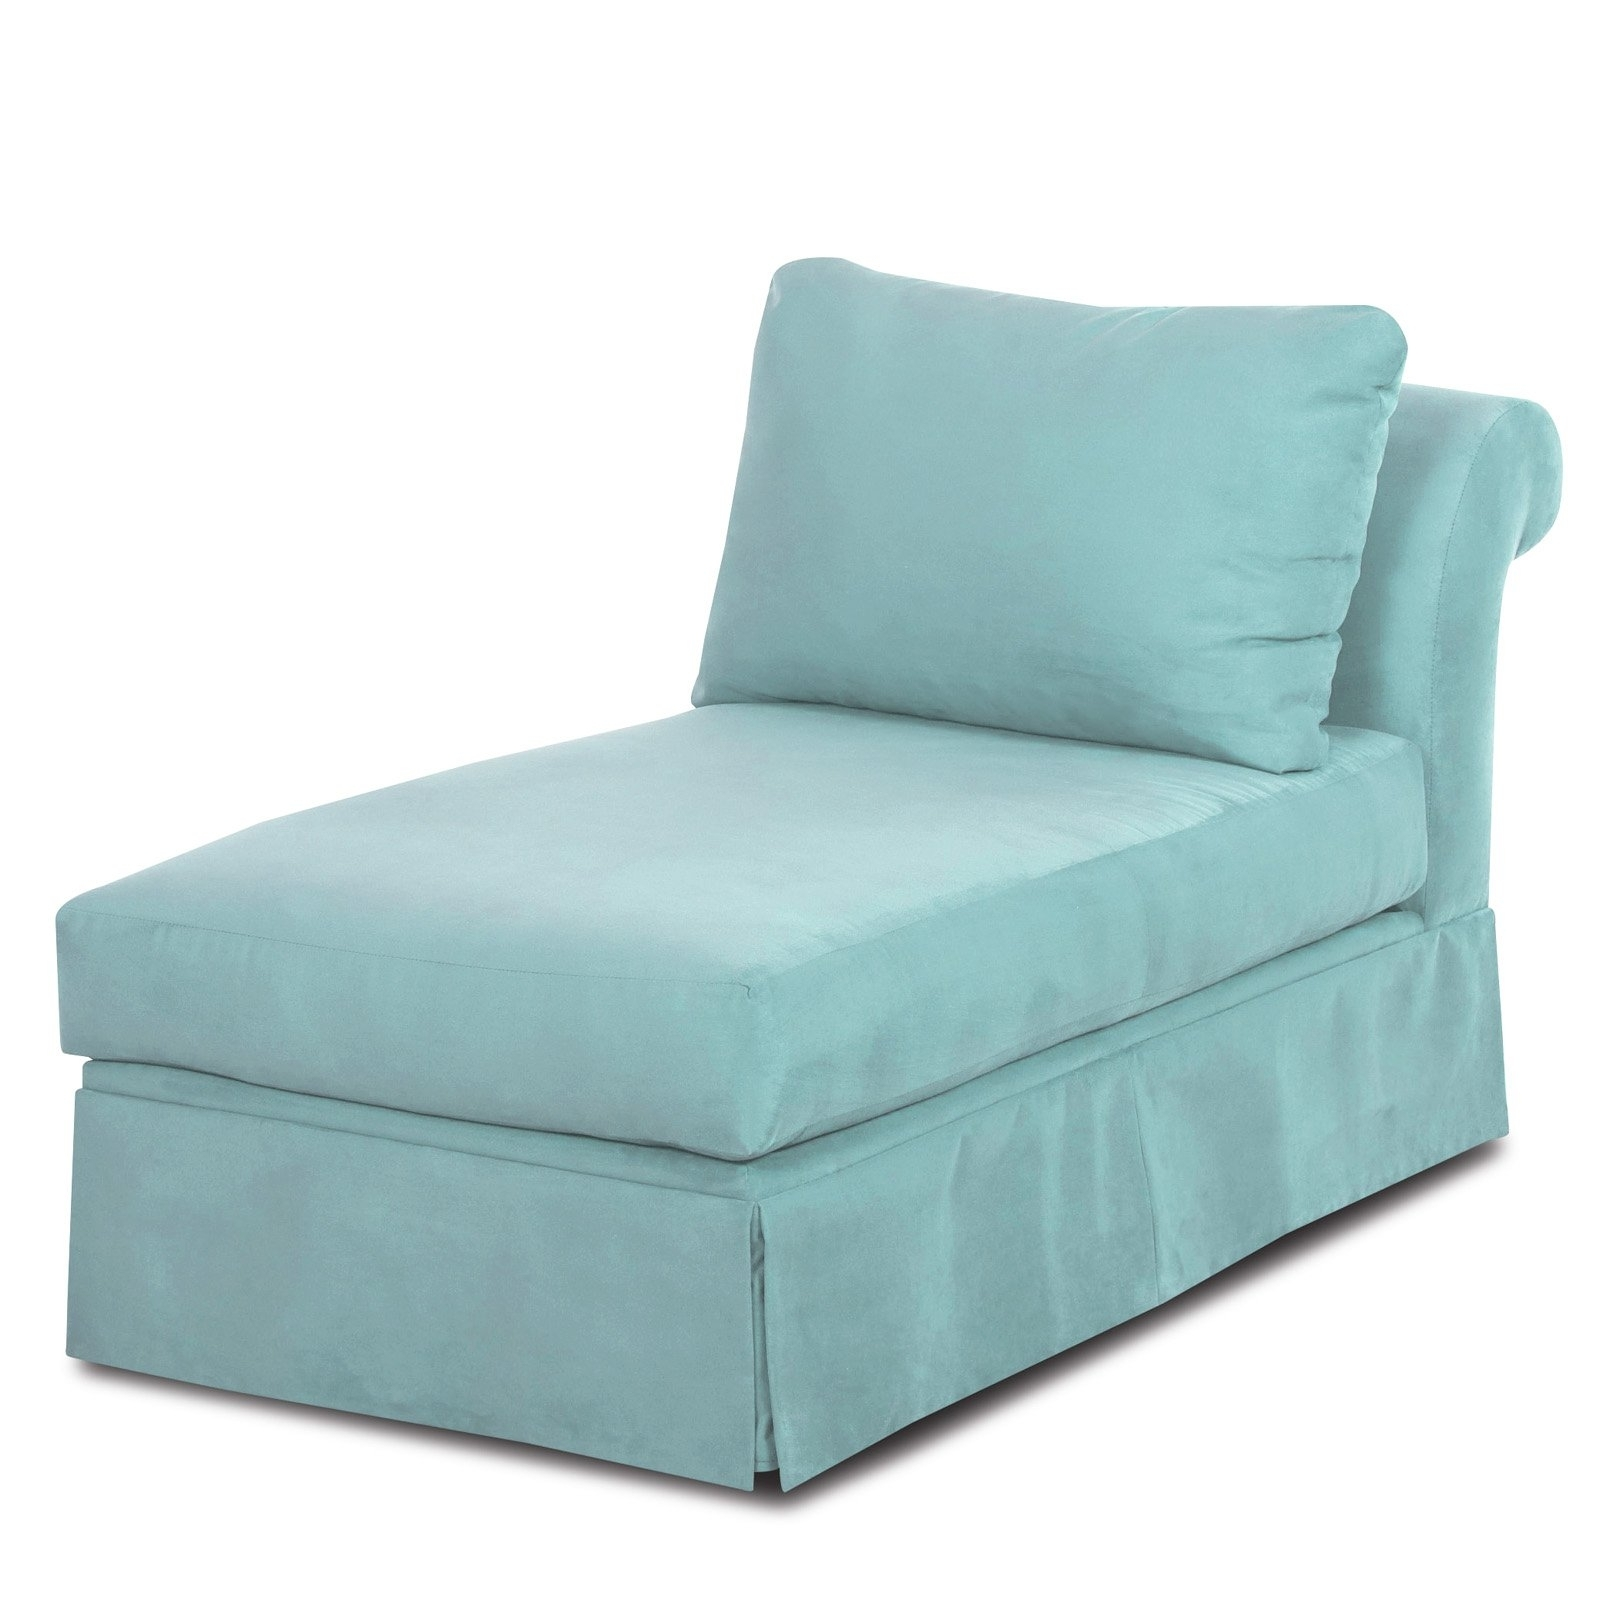 Teal Chaise Lounges Throughout Well Known Lovely Bedroom Chaise Lounge Chairs (38 Photos) (View 13 of 15)